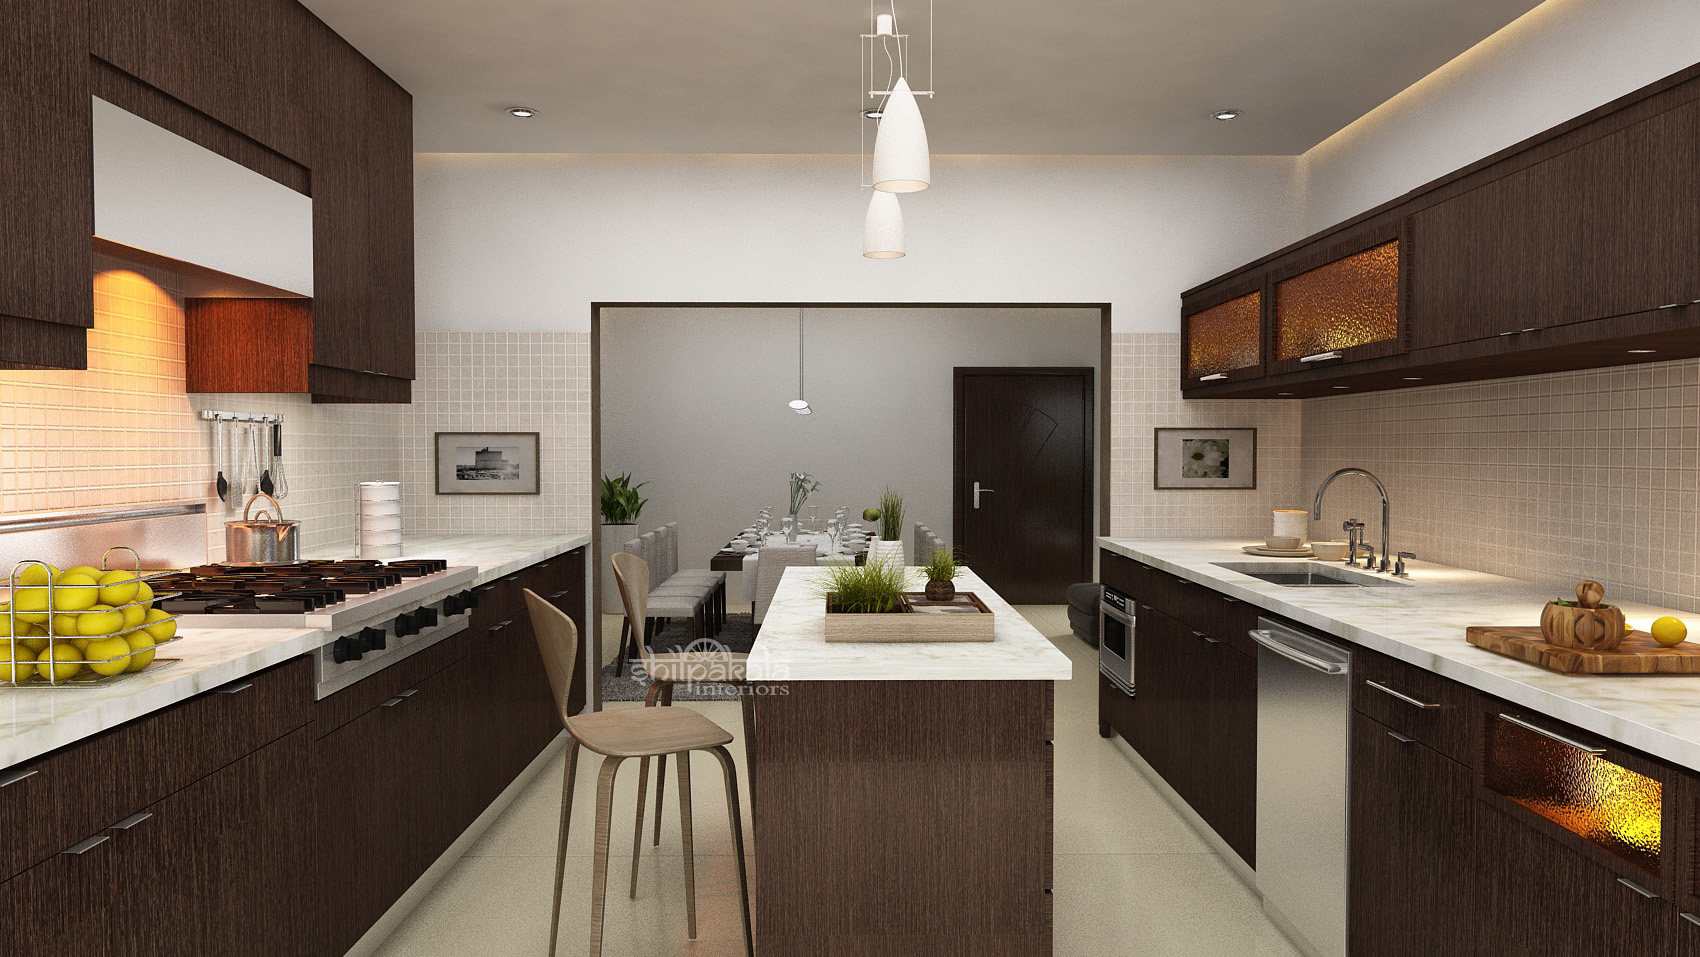 kitchen interior design kerala kitchen interior design images gallery 3273